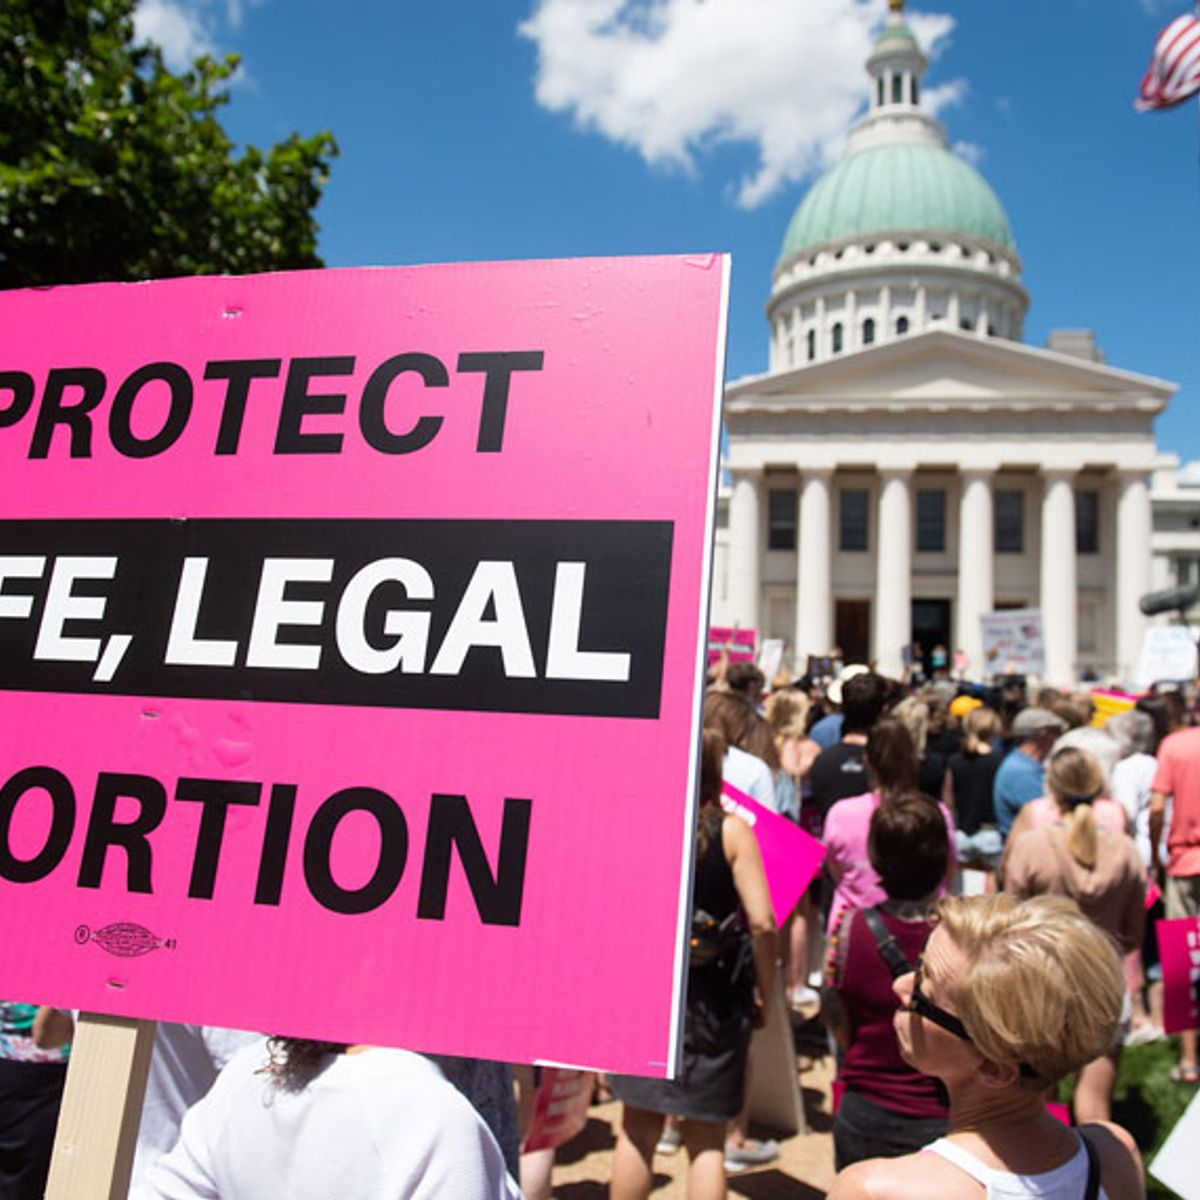 """""""The right to abortion has been decimated"""": Shocking stories characterize abortion rights hearing"""